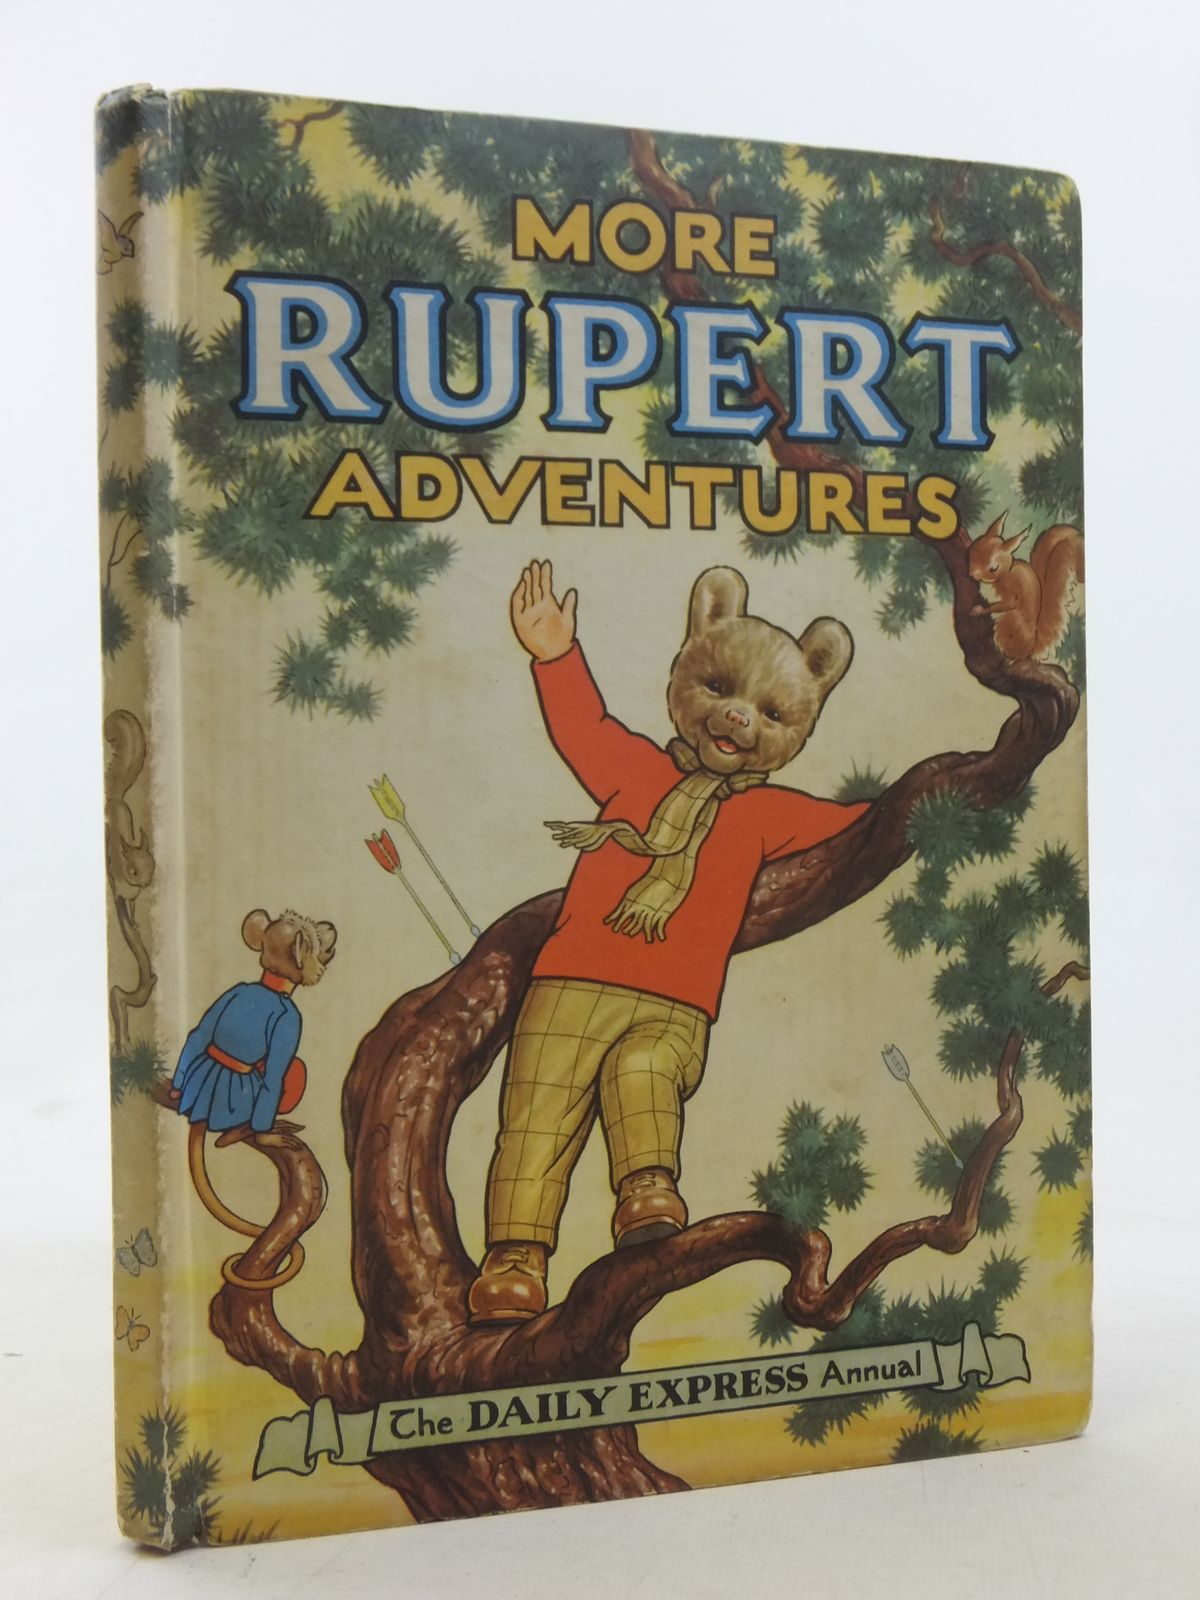 Photo of RUPERT ANNUAL 1952 - MORE RUPERT ADVENTURES written by Bestall, Alfred illustrated by Bestall, Alfred published by Daily Express (STOCK CODE: 1607265)  for sale by Stella & Rose's Books